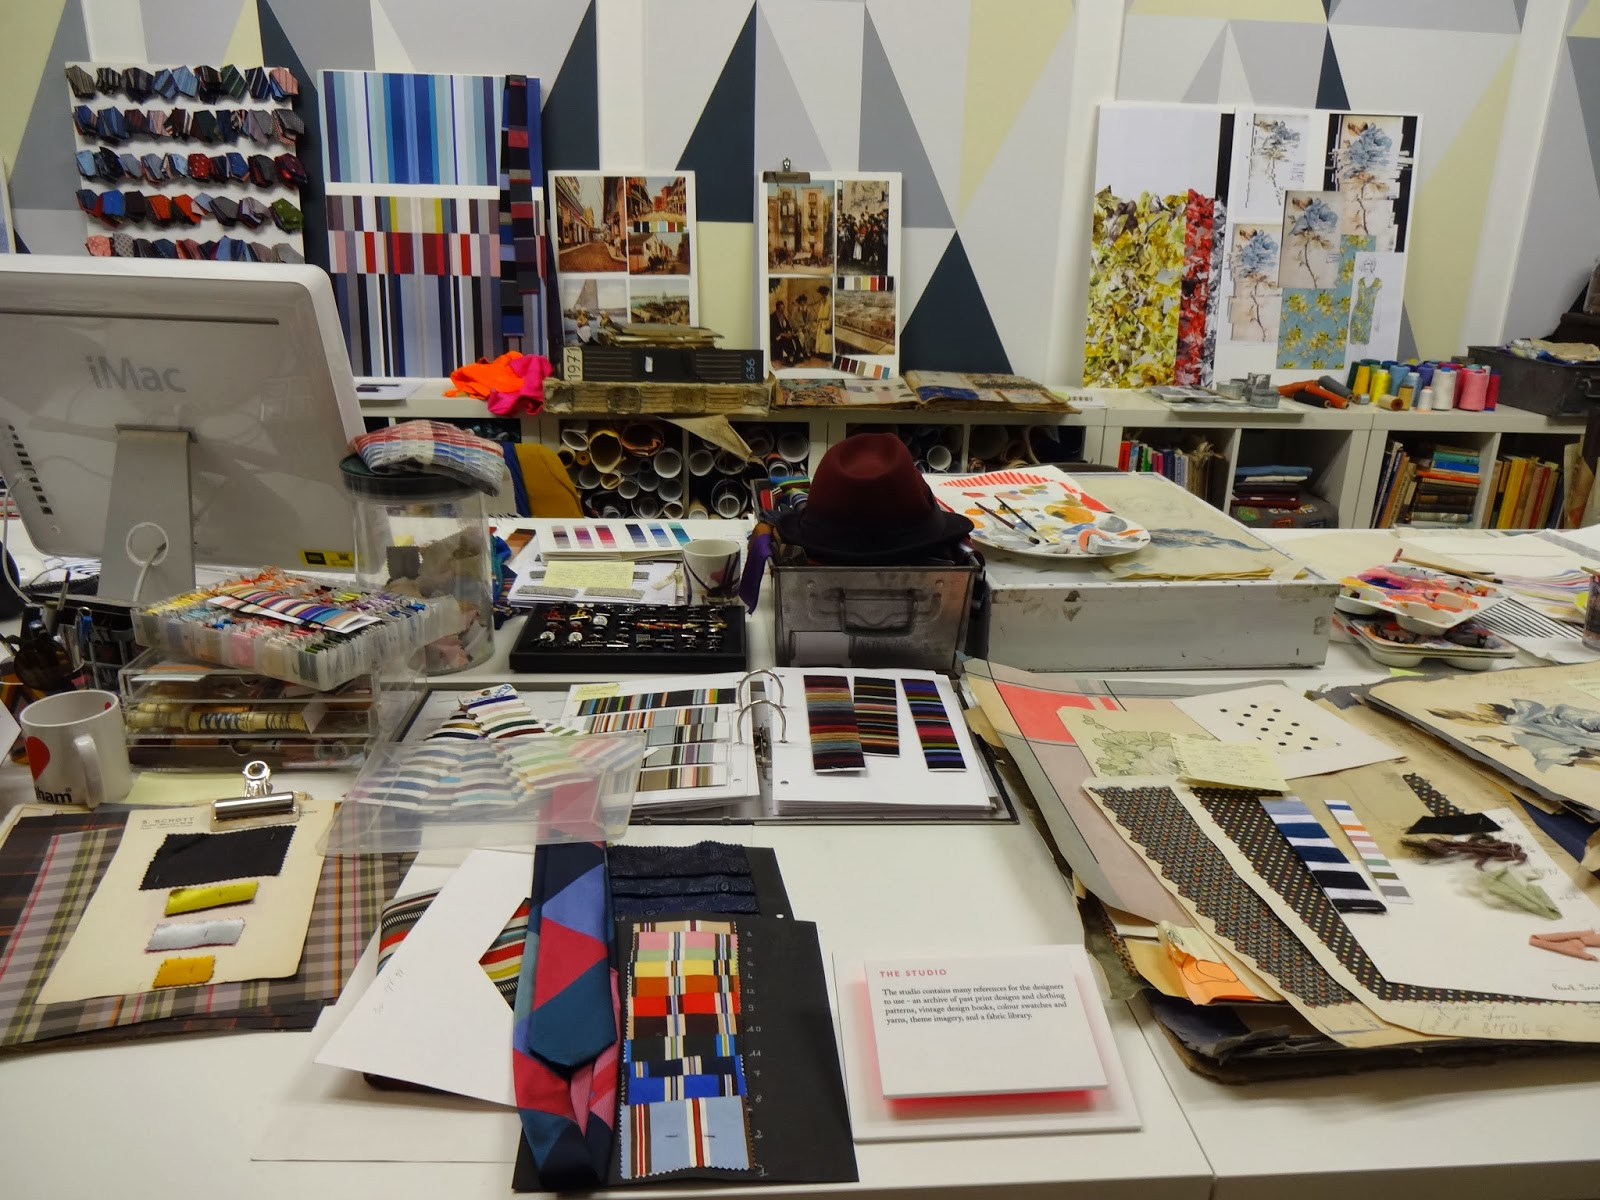 Paul Smith's Studio